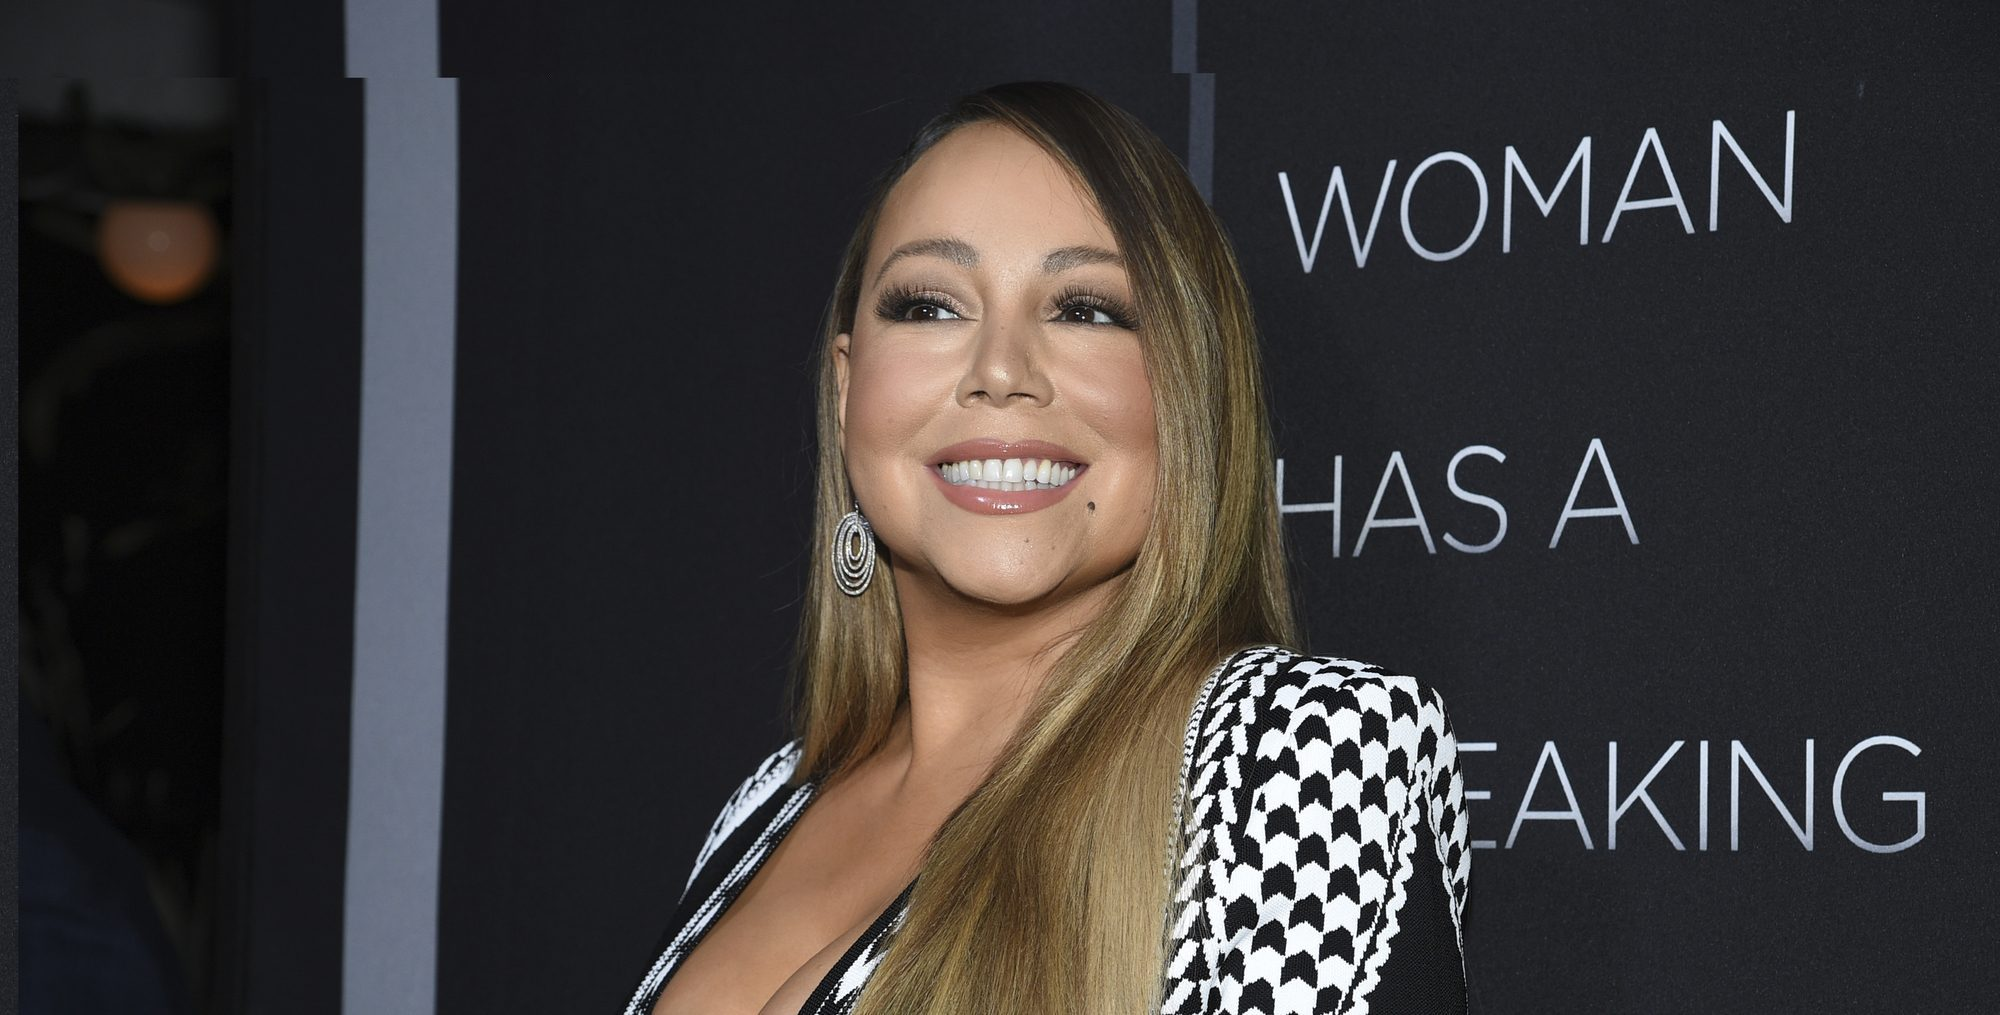 Mariah Carey, her challenges and transformation over time